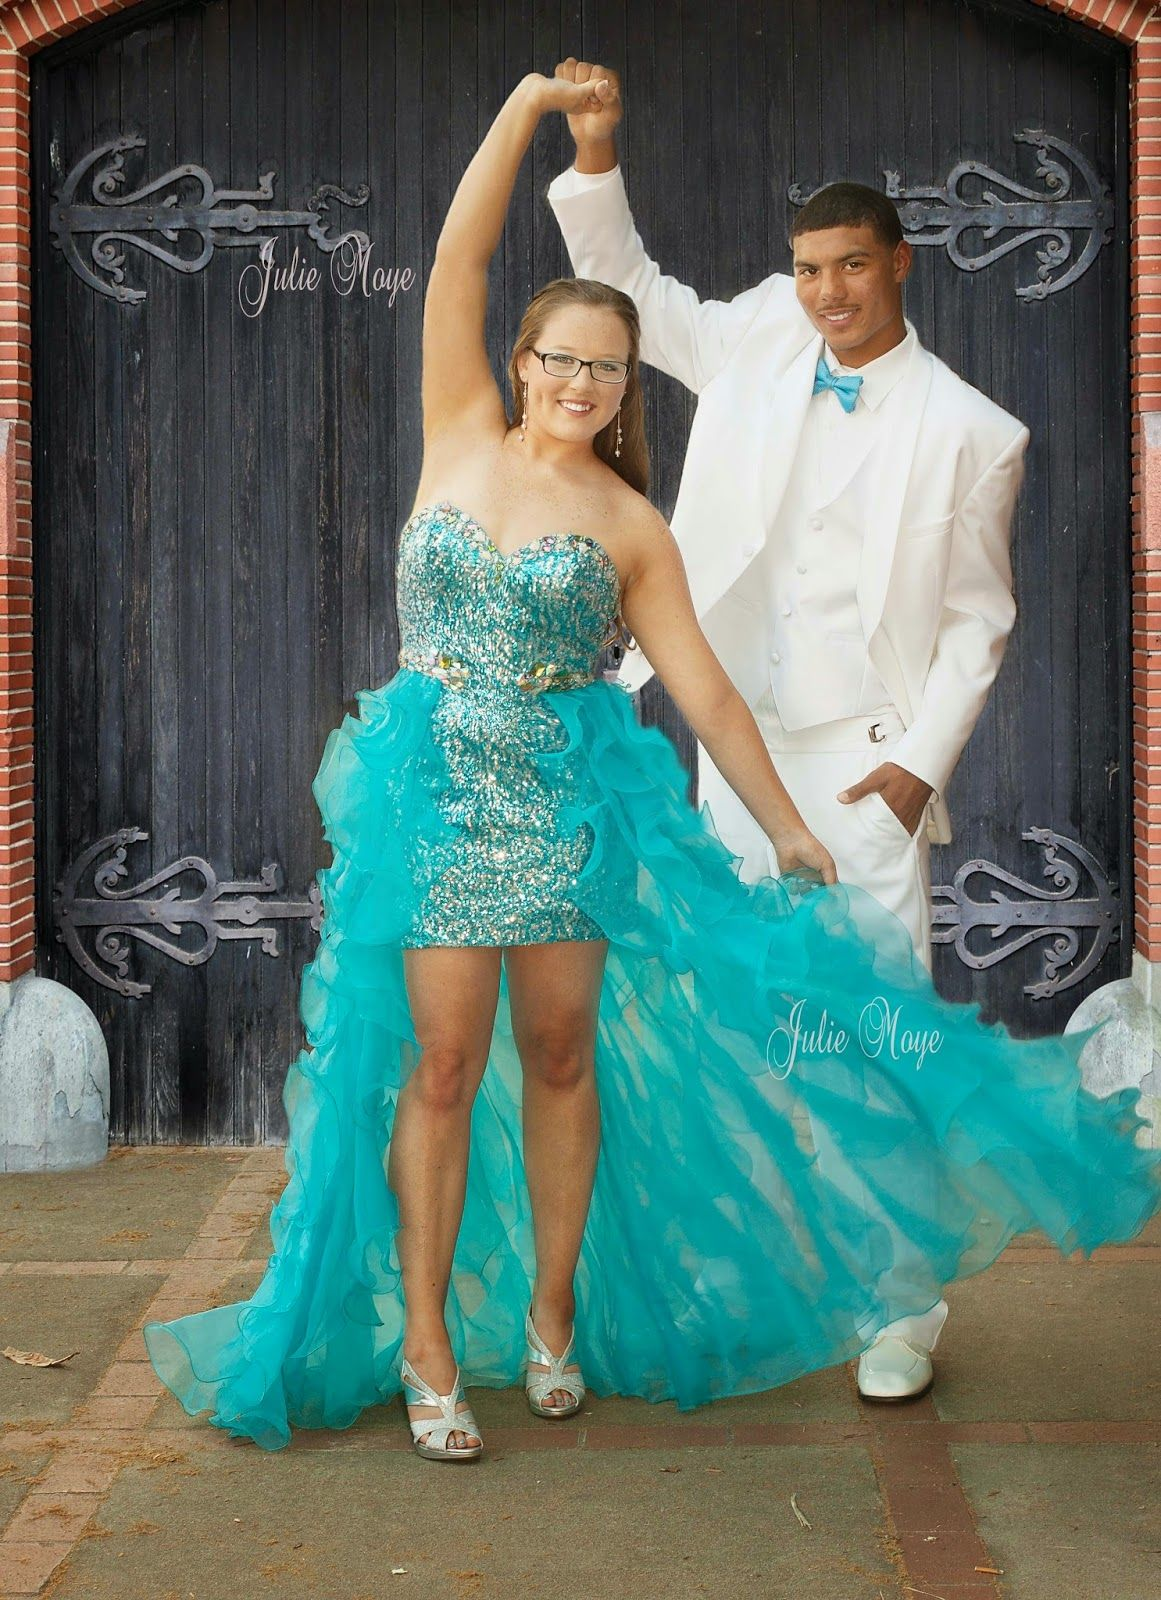 Prom, twirl, couple, teens, teen, girl, boy, dress, heels, tux ...